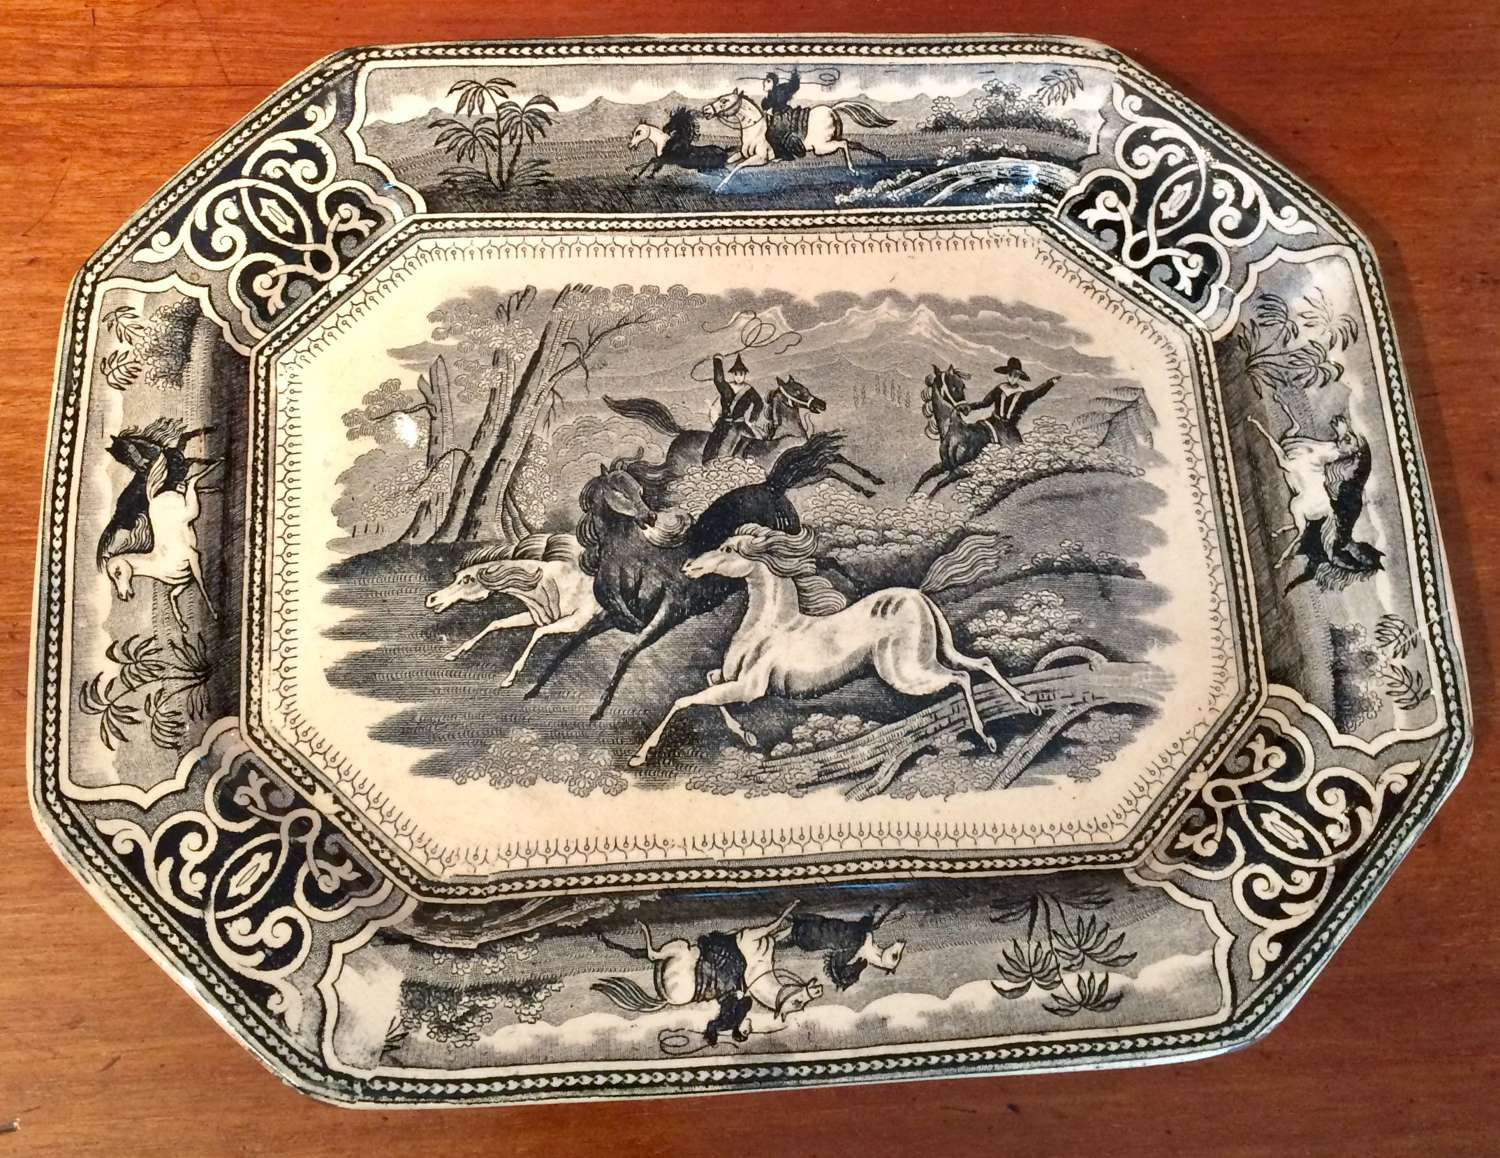 19th century Lindner & Co transferware dish.